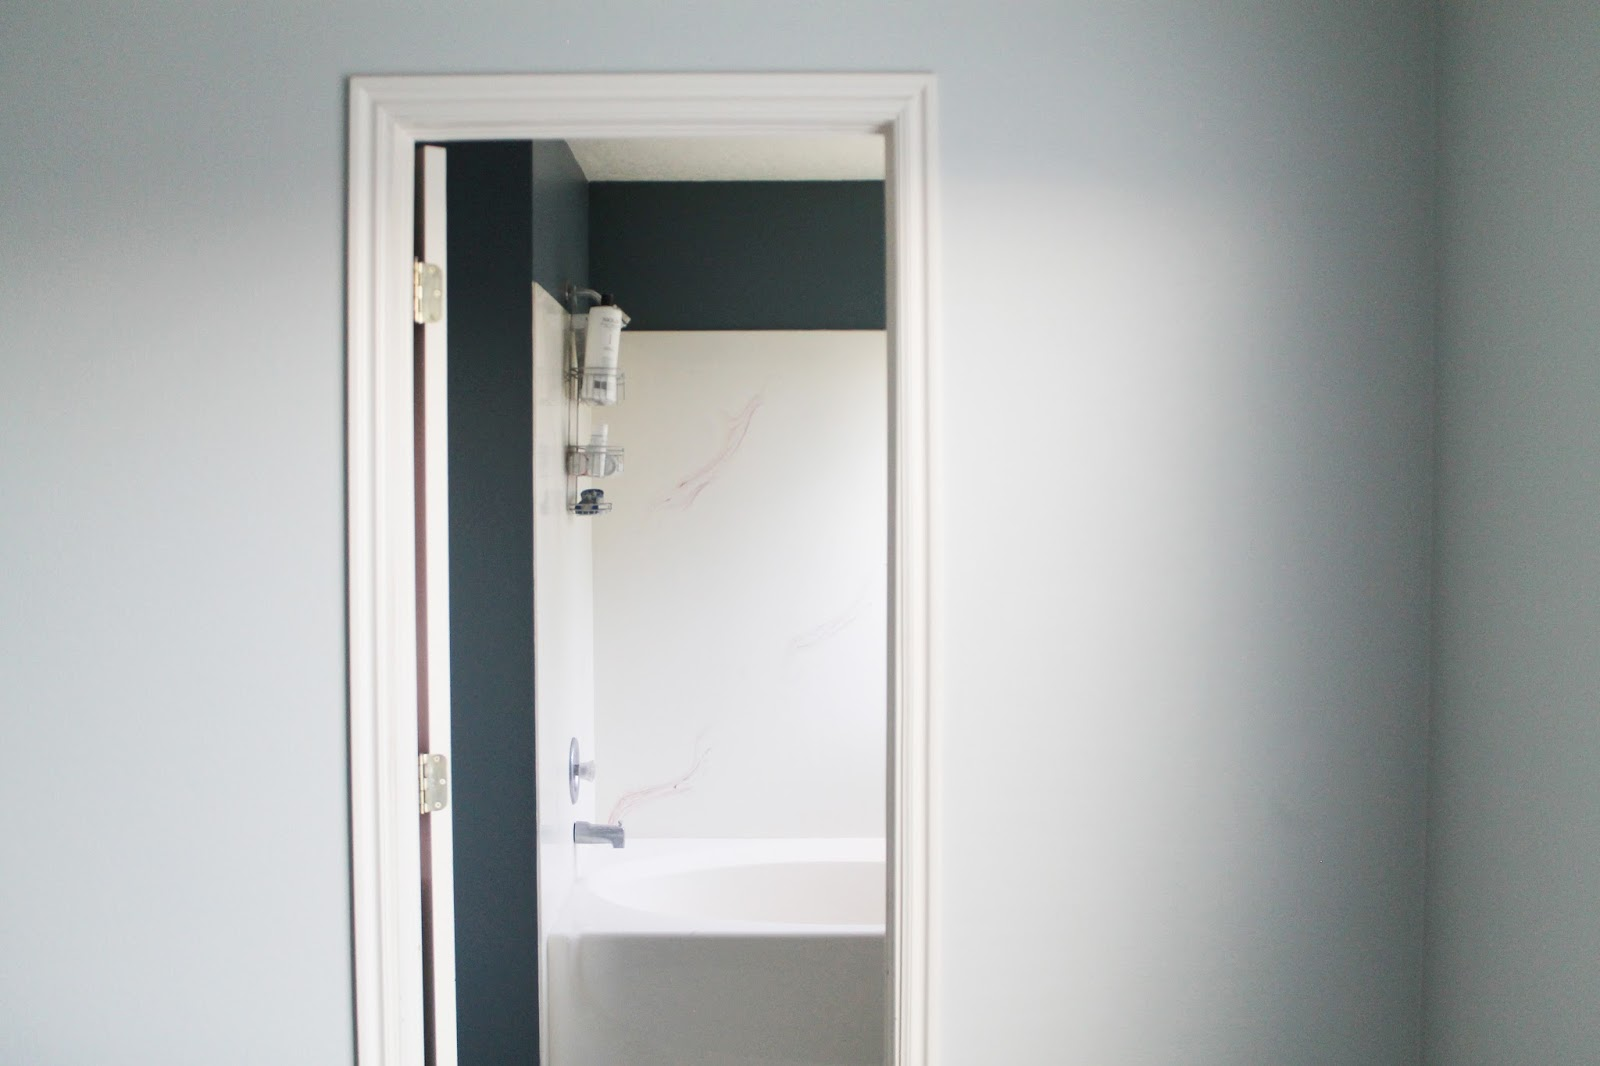 Master Bath Reno: Paint Goes a Long Way | Chris Loves Julia